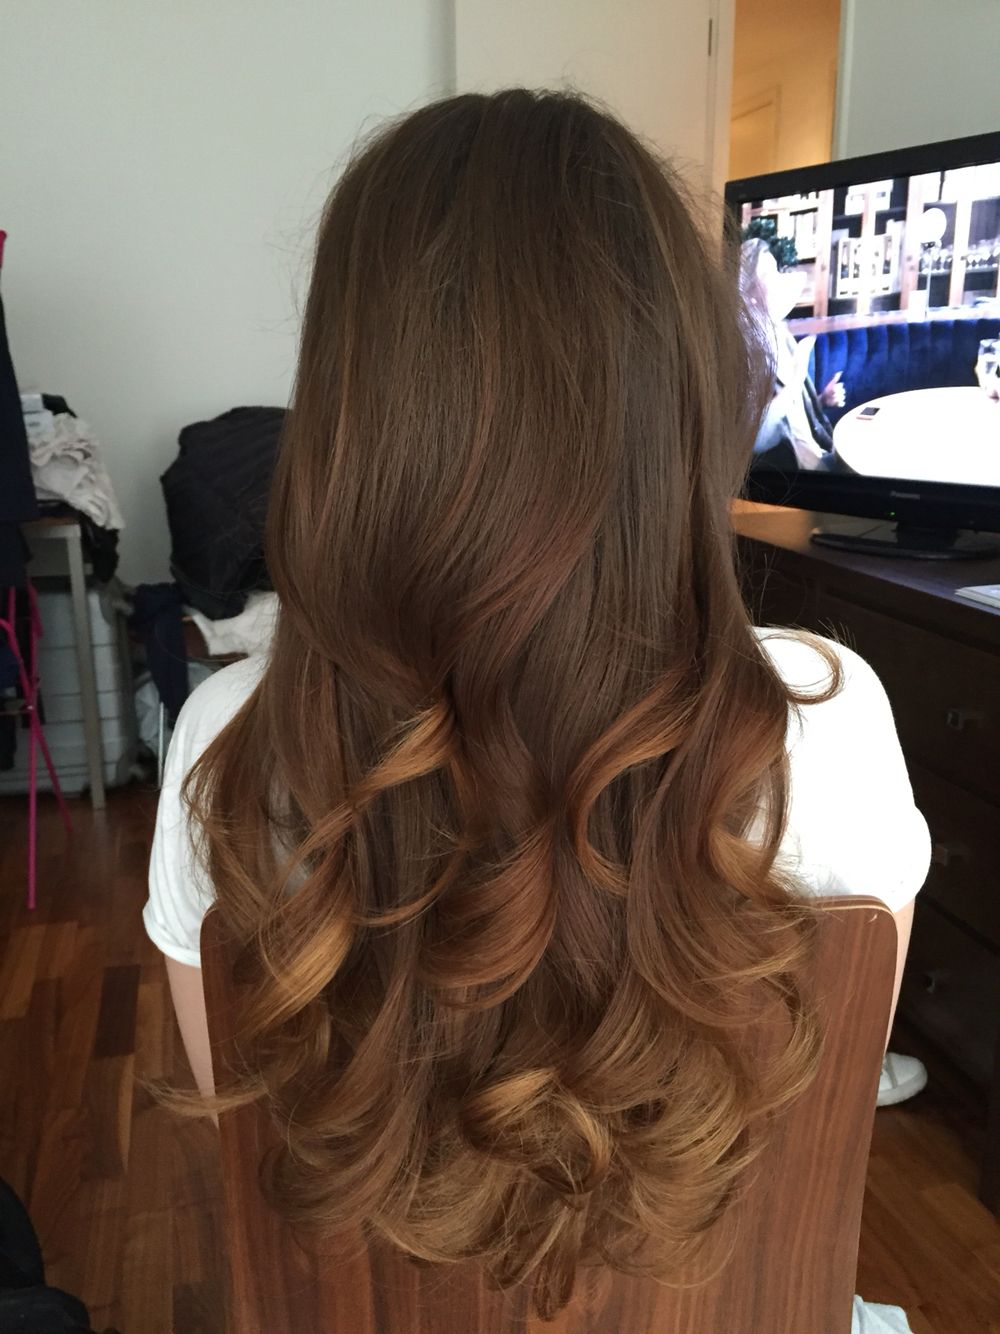 loving these long loose waves | birthday hairstyles | curls